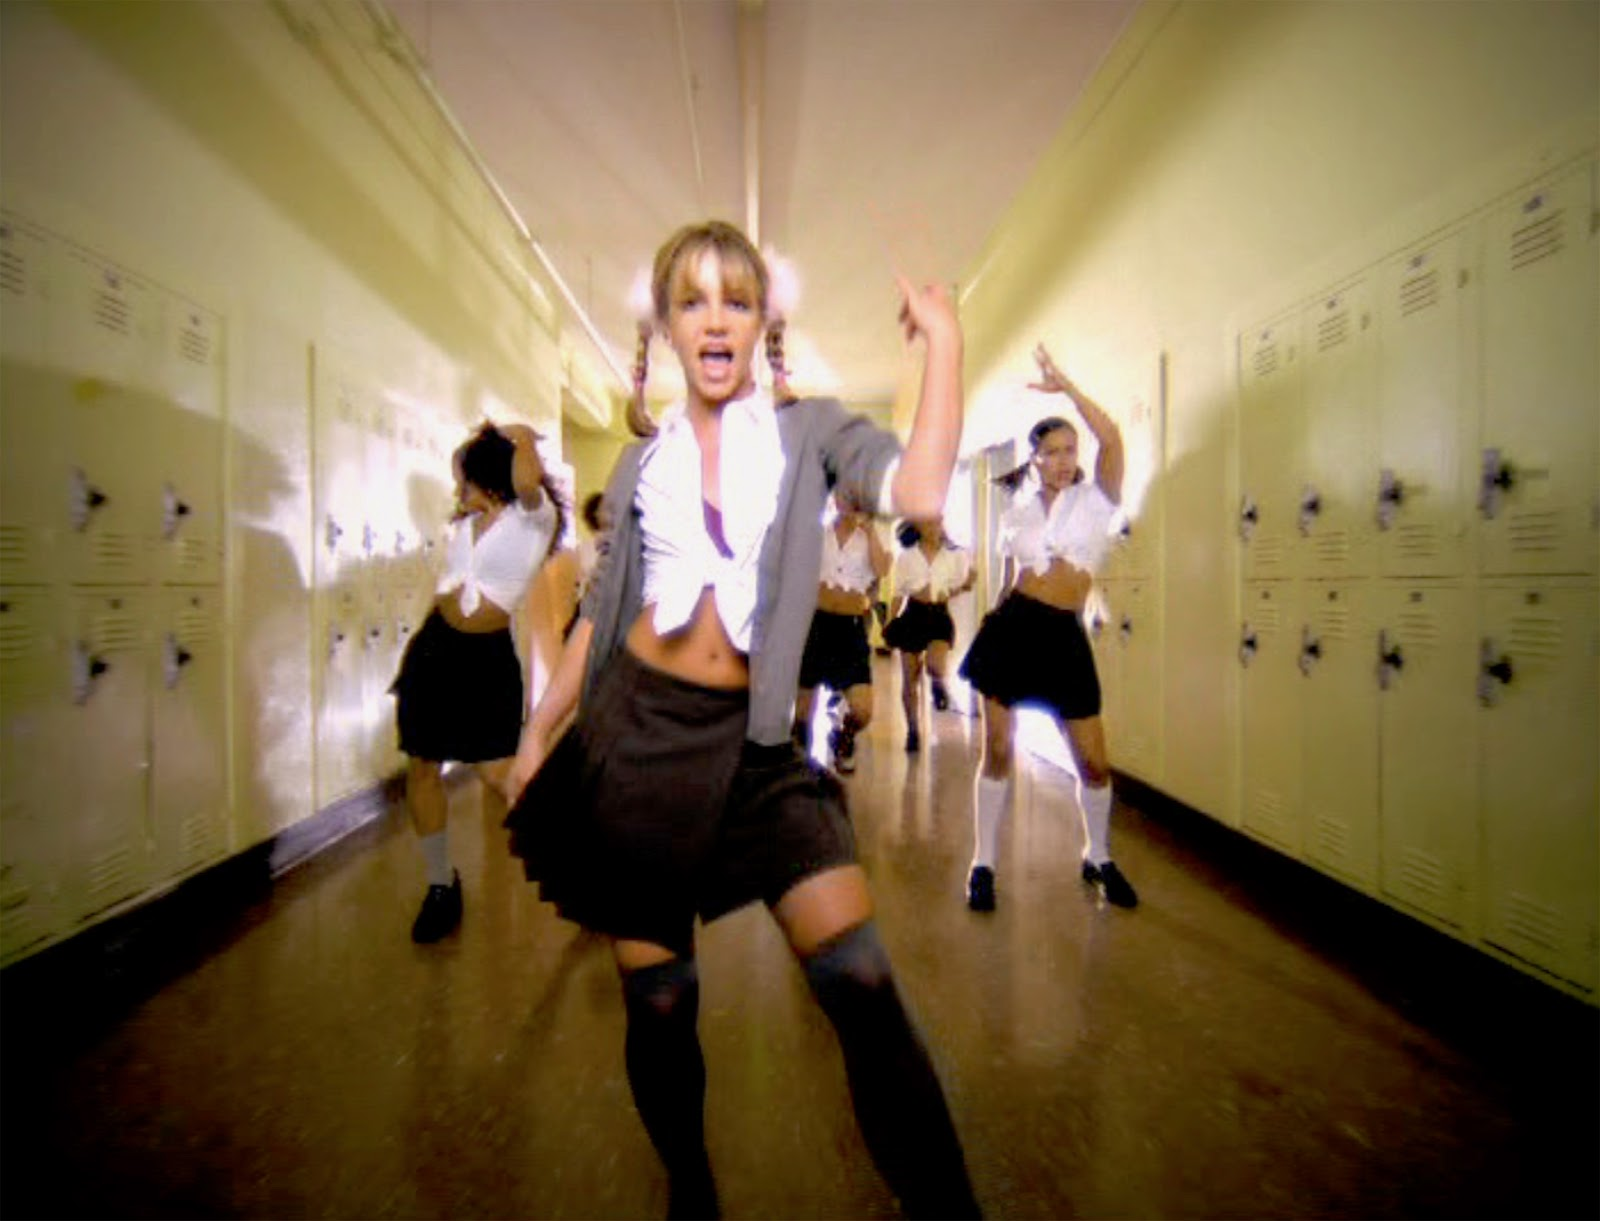 Britney spears baby one more time video download archive.